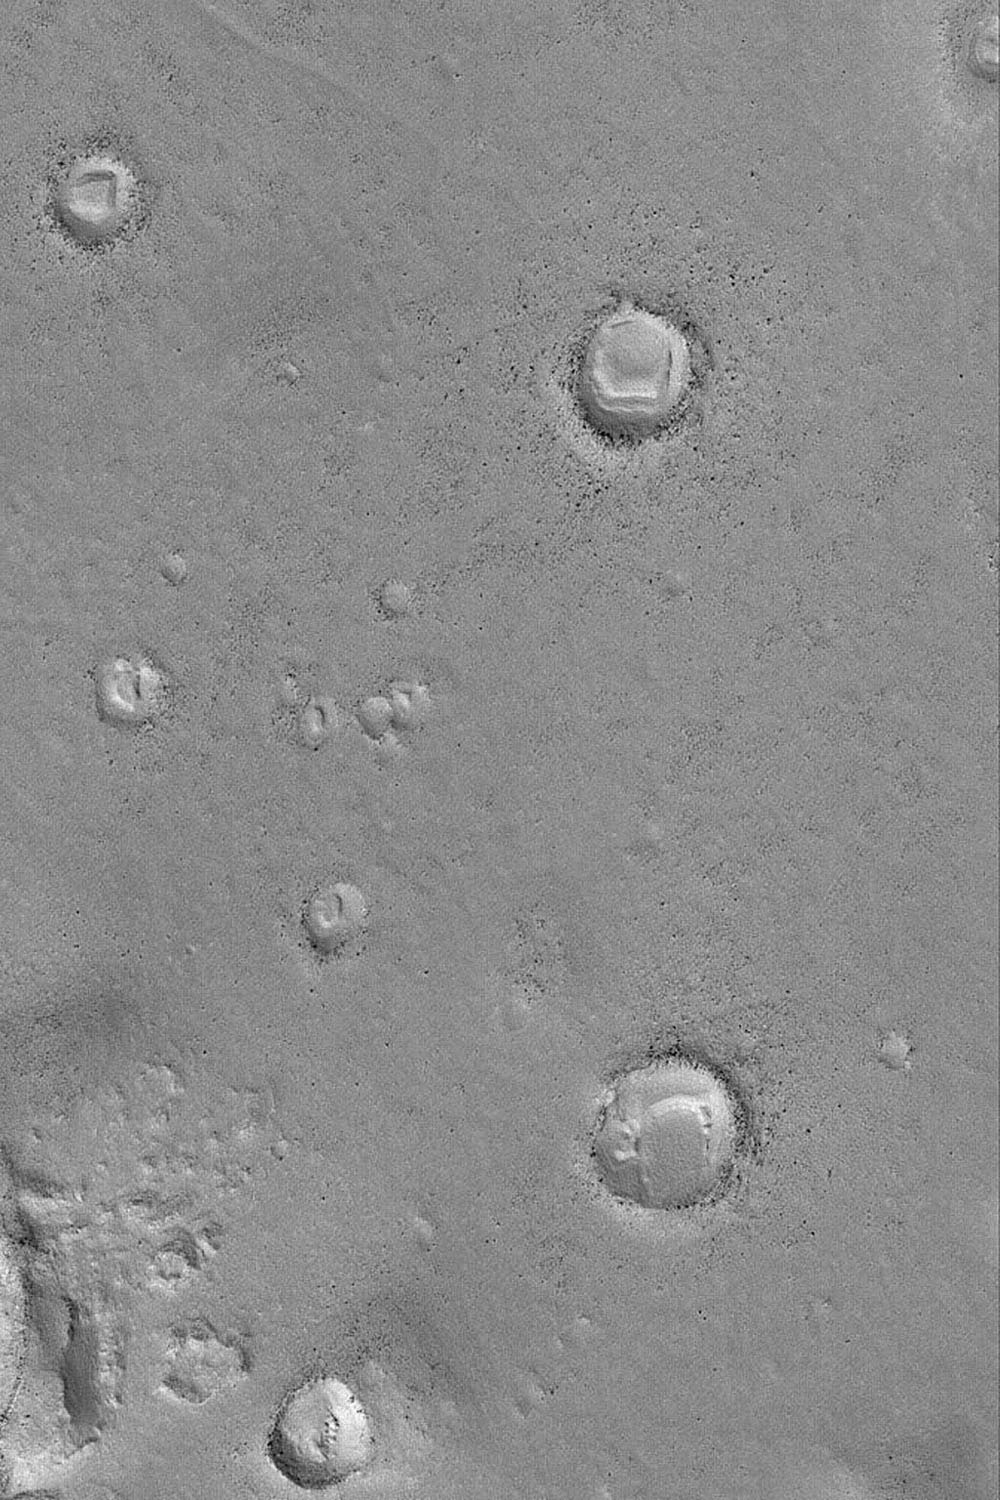 NASA's Mars Global Surveyor shows several north mid-latitude meteor impact craters on Mars with bouldery ejecta deposits. Each of the craters was once buried and later exhumed.